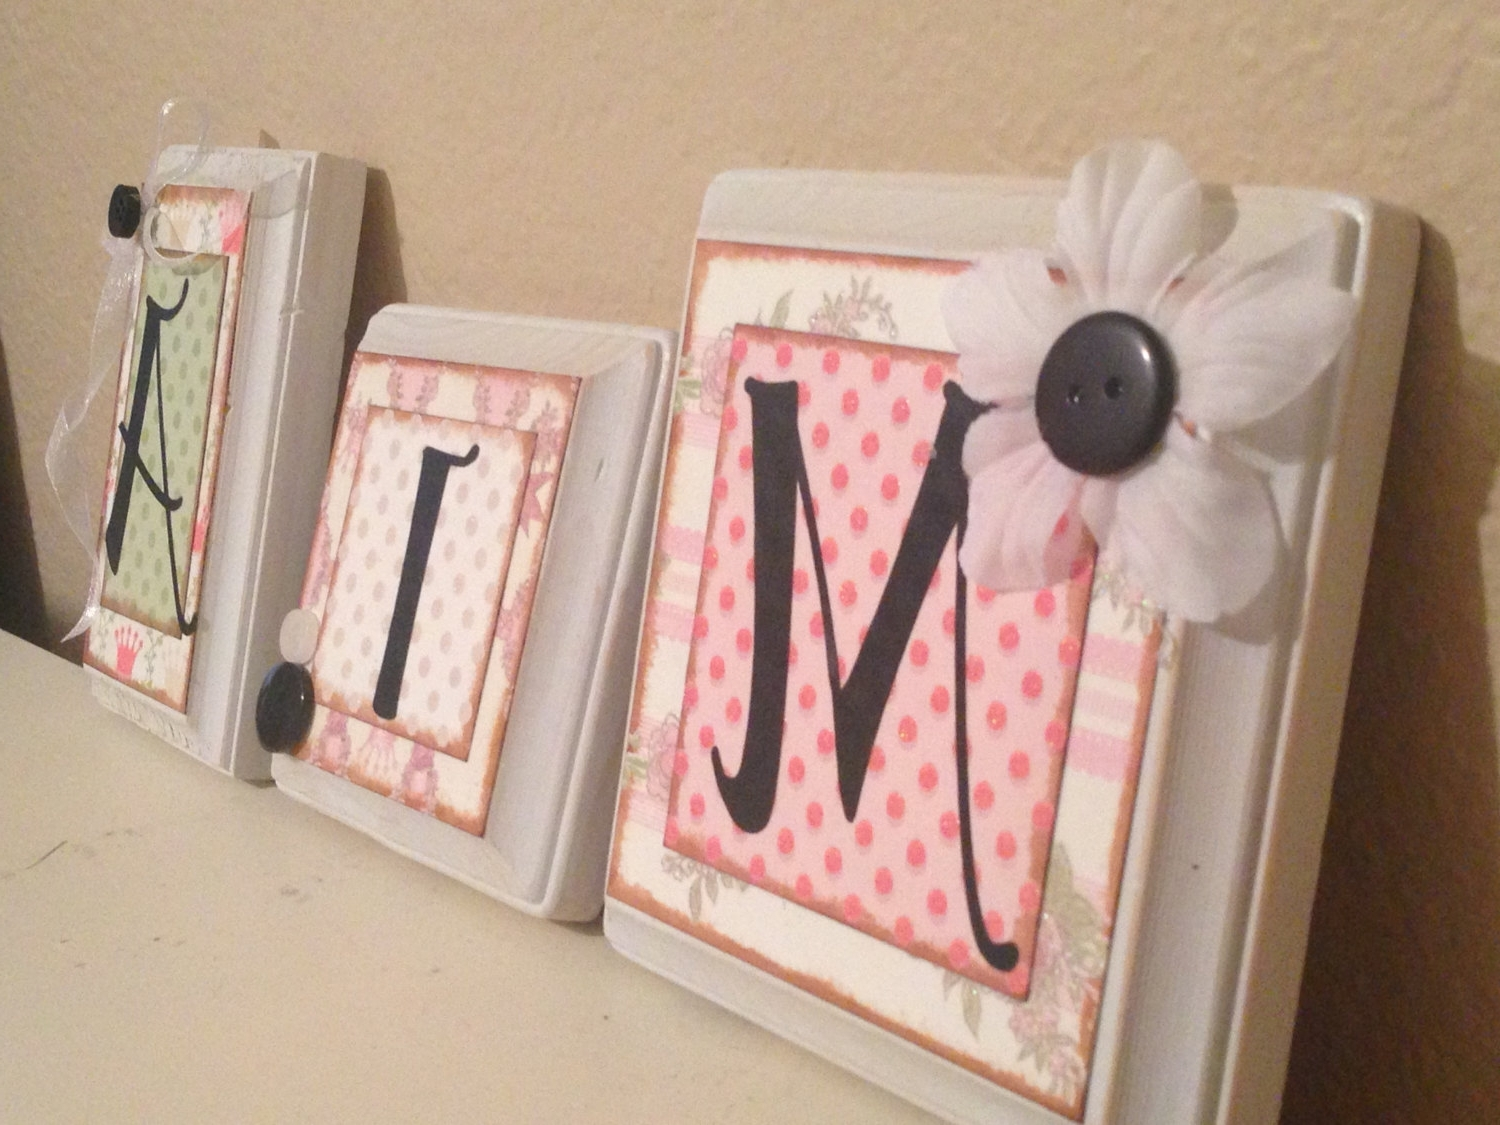 Most Popular Bedroom: Cute Baby Room Name Letters Ideas As Bedroom Decorations Intended For Fabric Wall Art Letters (View 12 of 15)